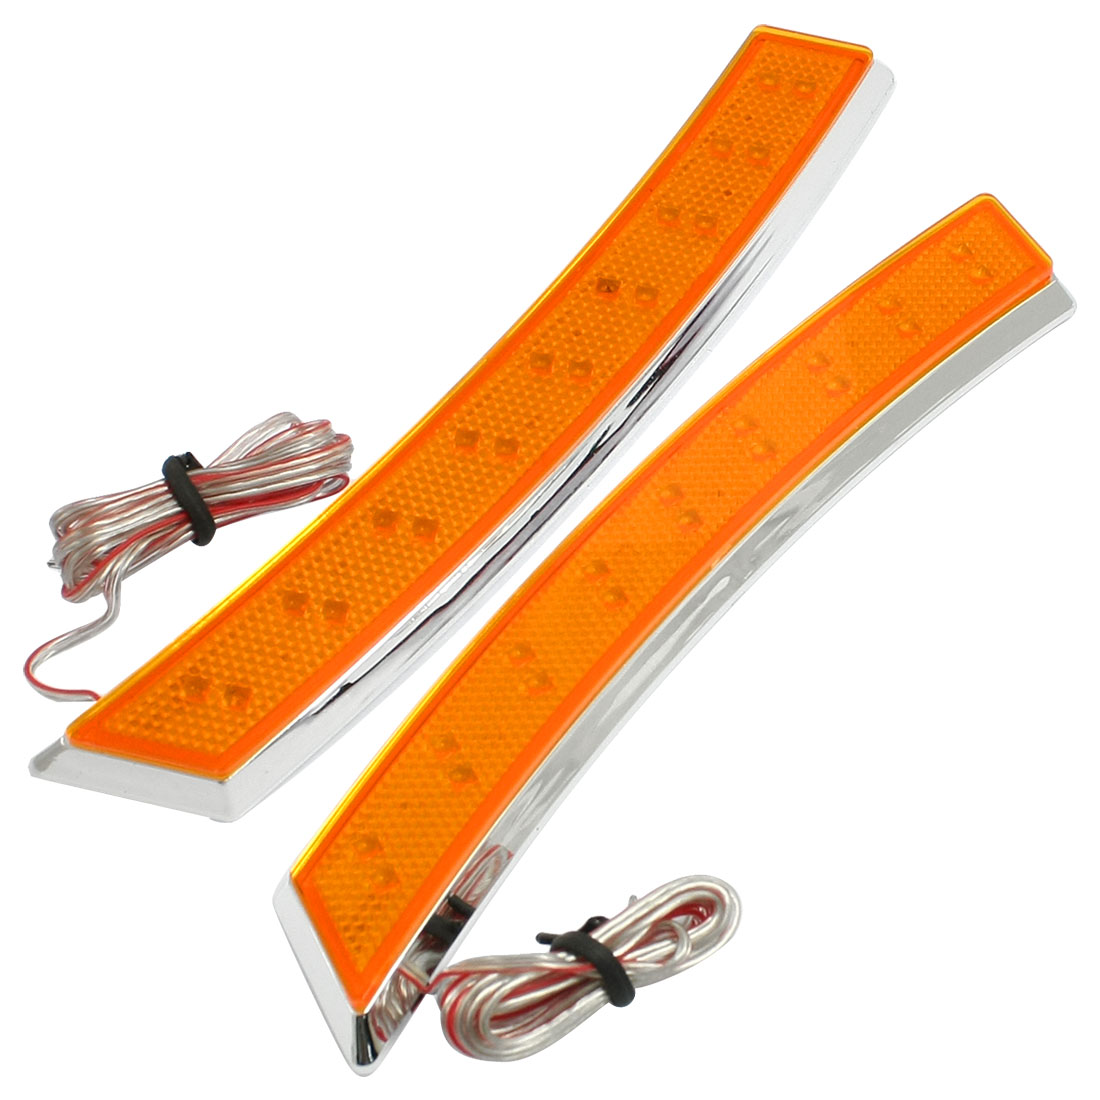 Car Wheel Eyebrow Side Marker Adhesive 18 LED Turn Signal Light Orange 2 Pcs